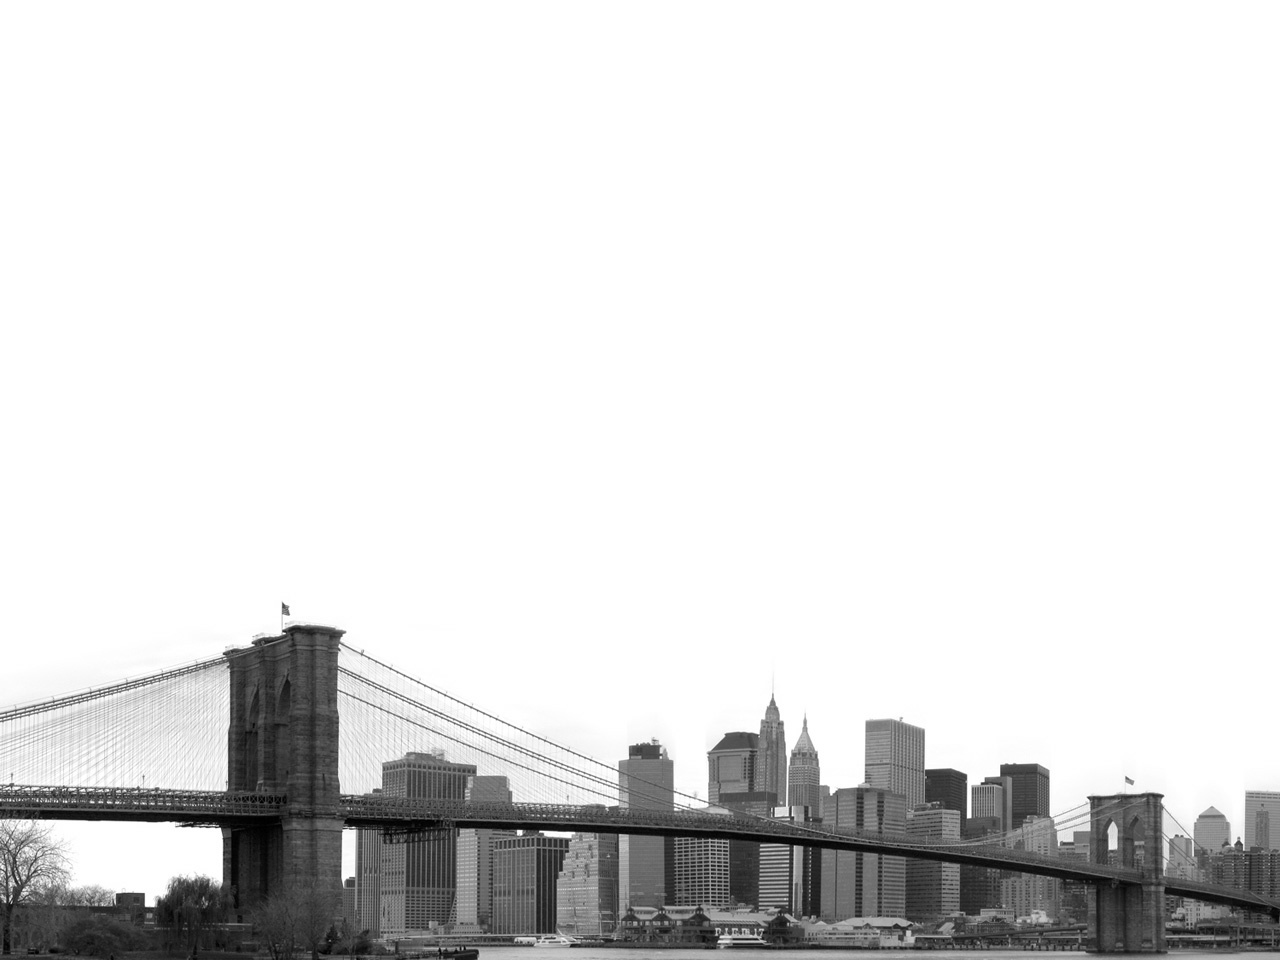 1280x960 Brooklyn Bridge